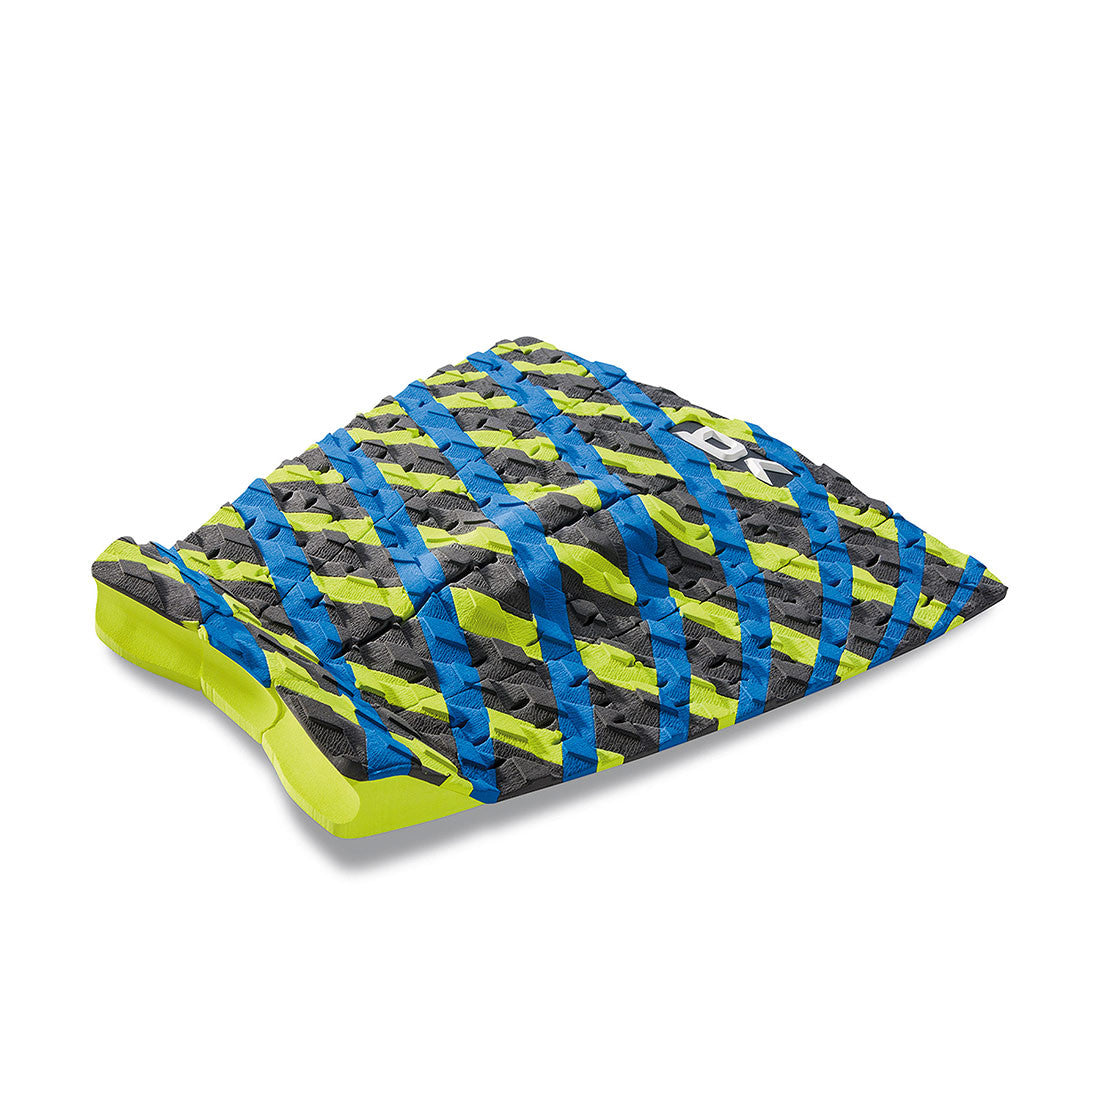 Dakine Parko Pro Surfboard Traction Pad (New Blue)